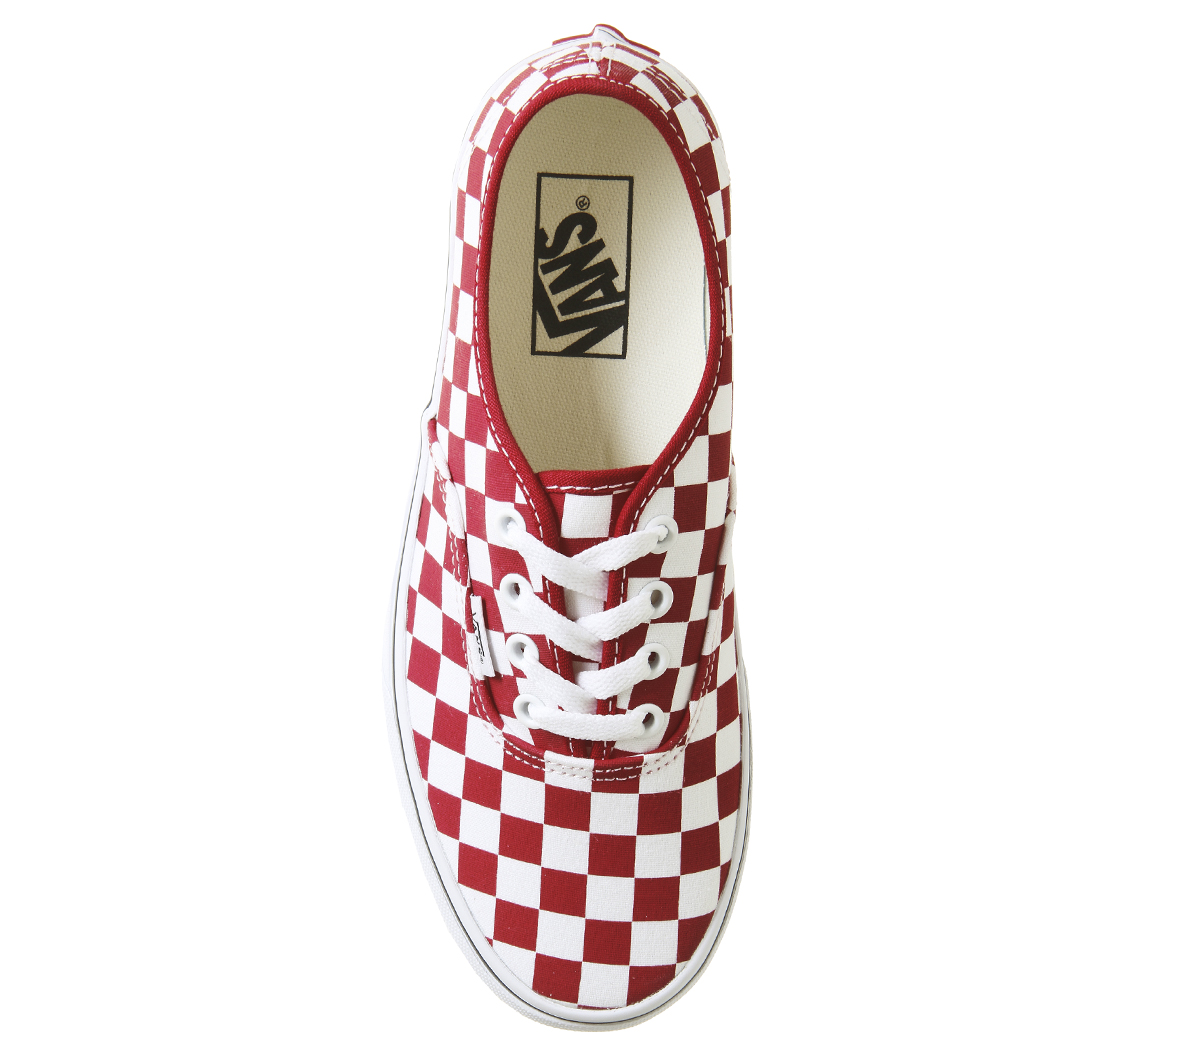 47335a0177 Womens Vans Authentic Platforms Racing Red True White Checkerboard ...